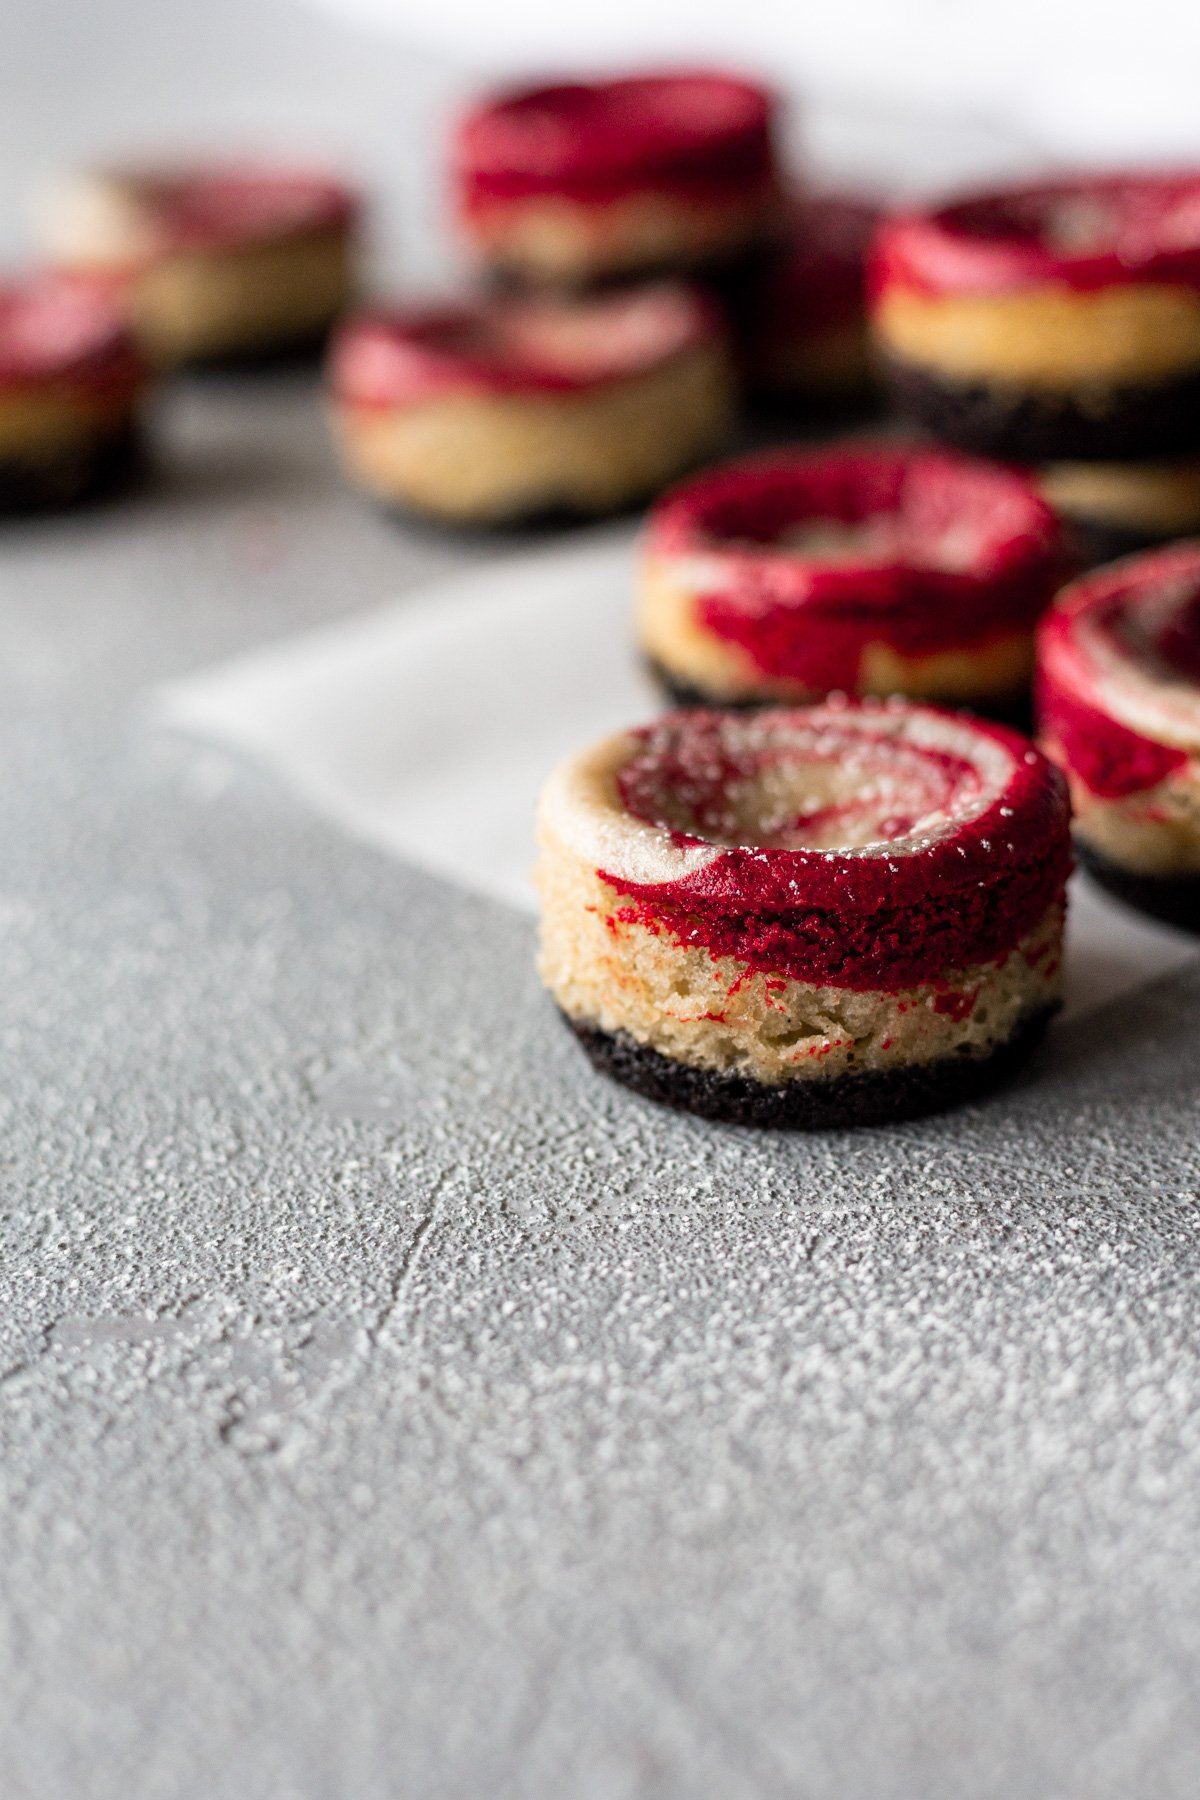 mini red velvet vegan cheesecakes scattered on a grey backdrop